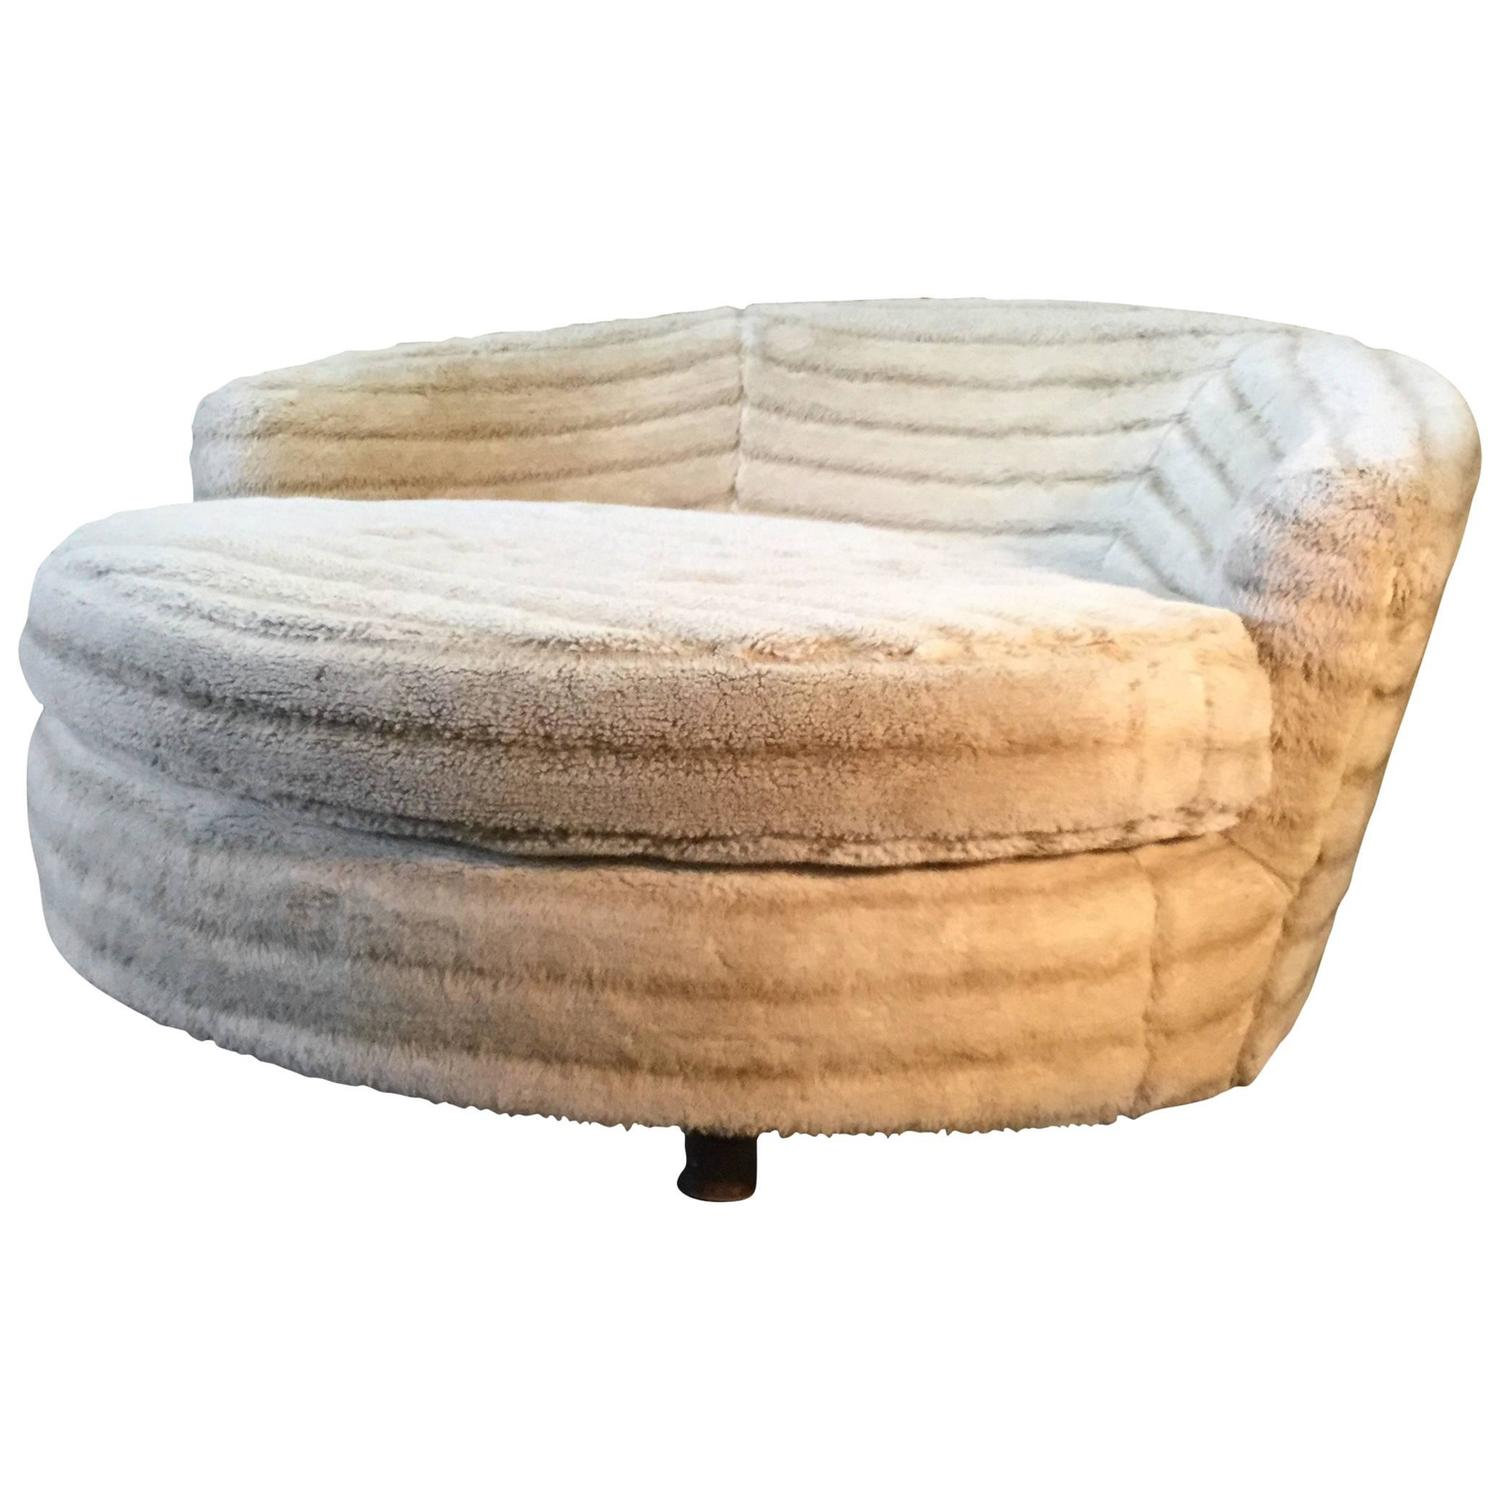 Round Lounge Chair Manner of Milo Baughman or Pearsall For Sale at 1stdibs